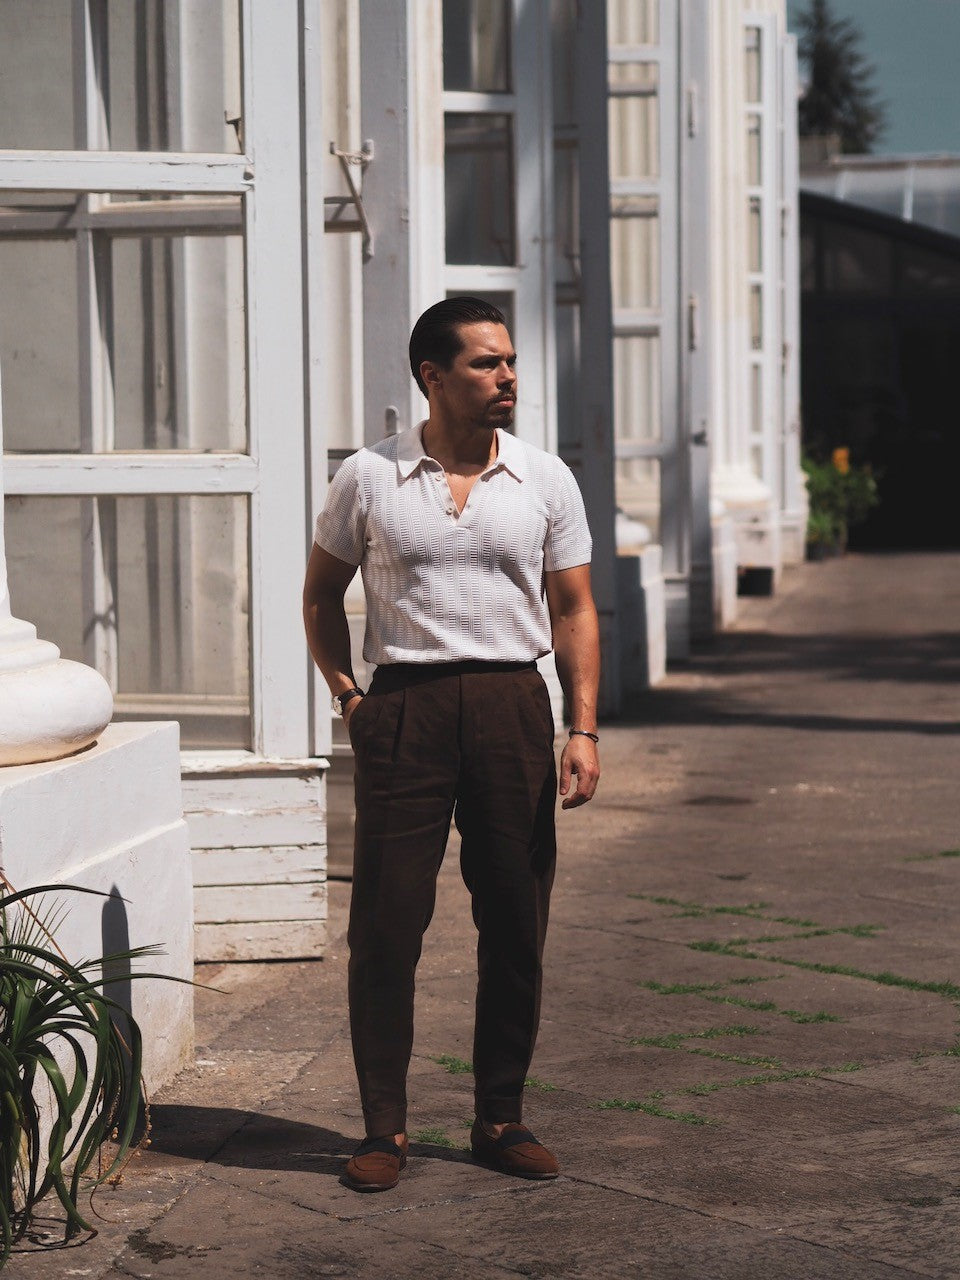 White knitted polo shirt with brown linen trousers